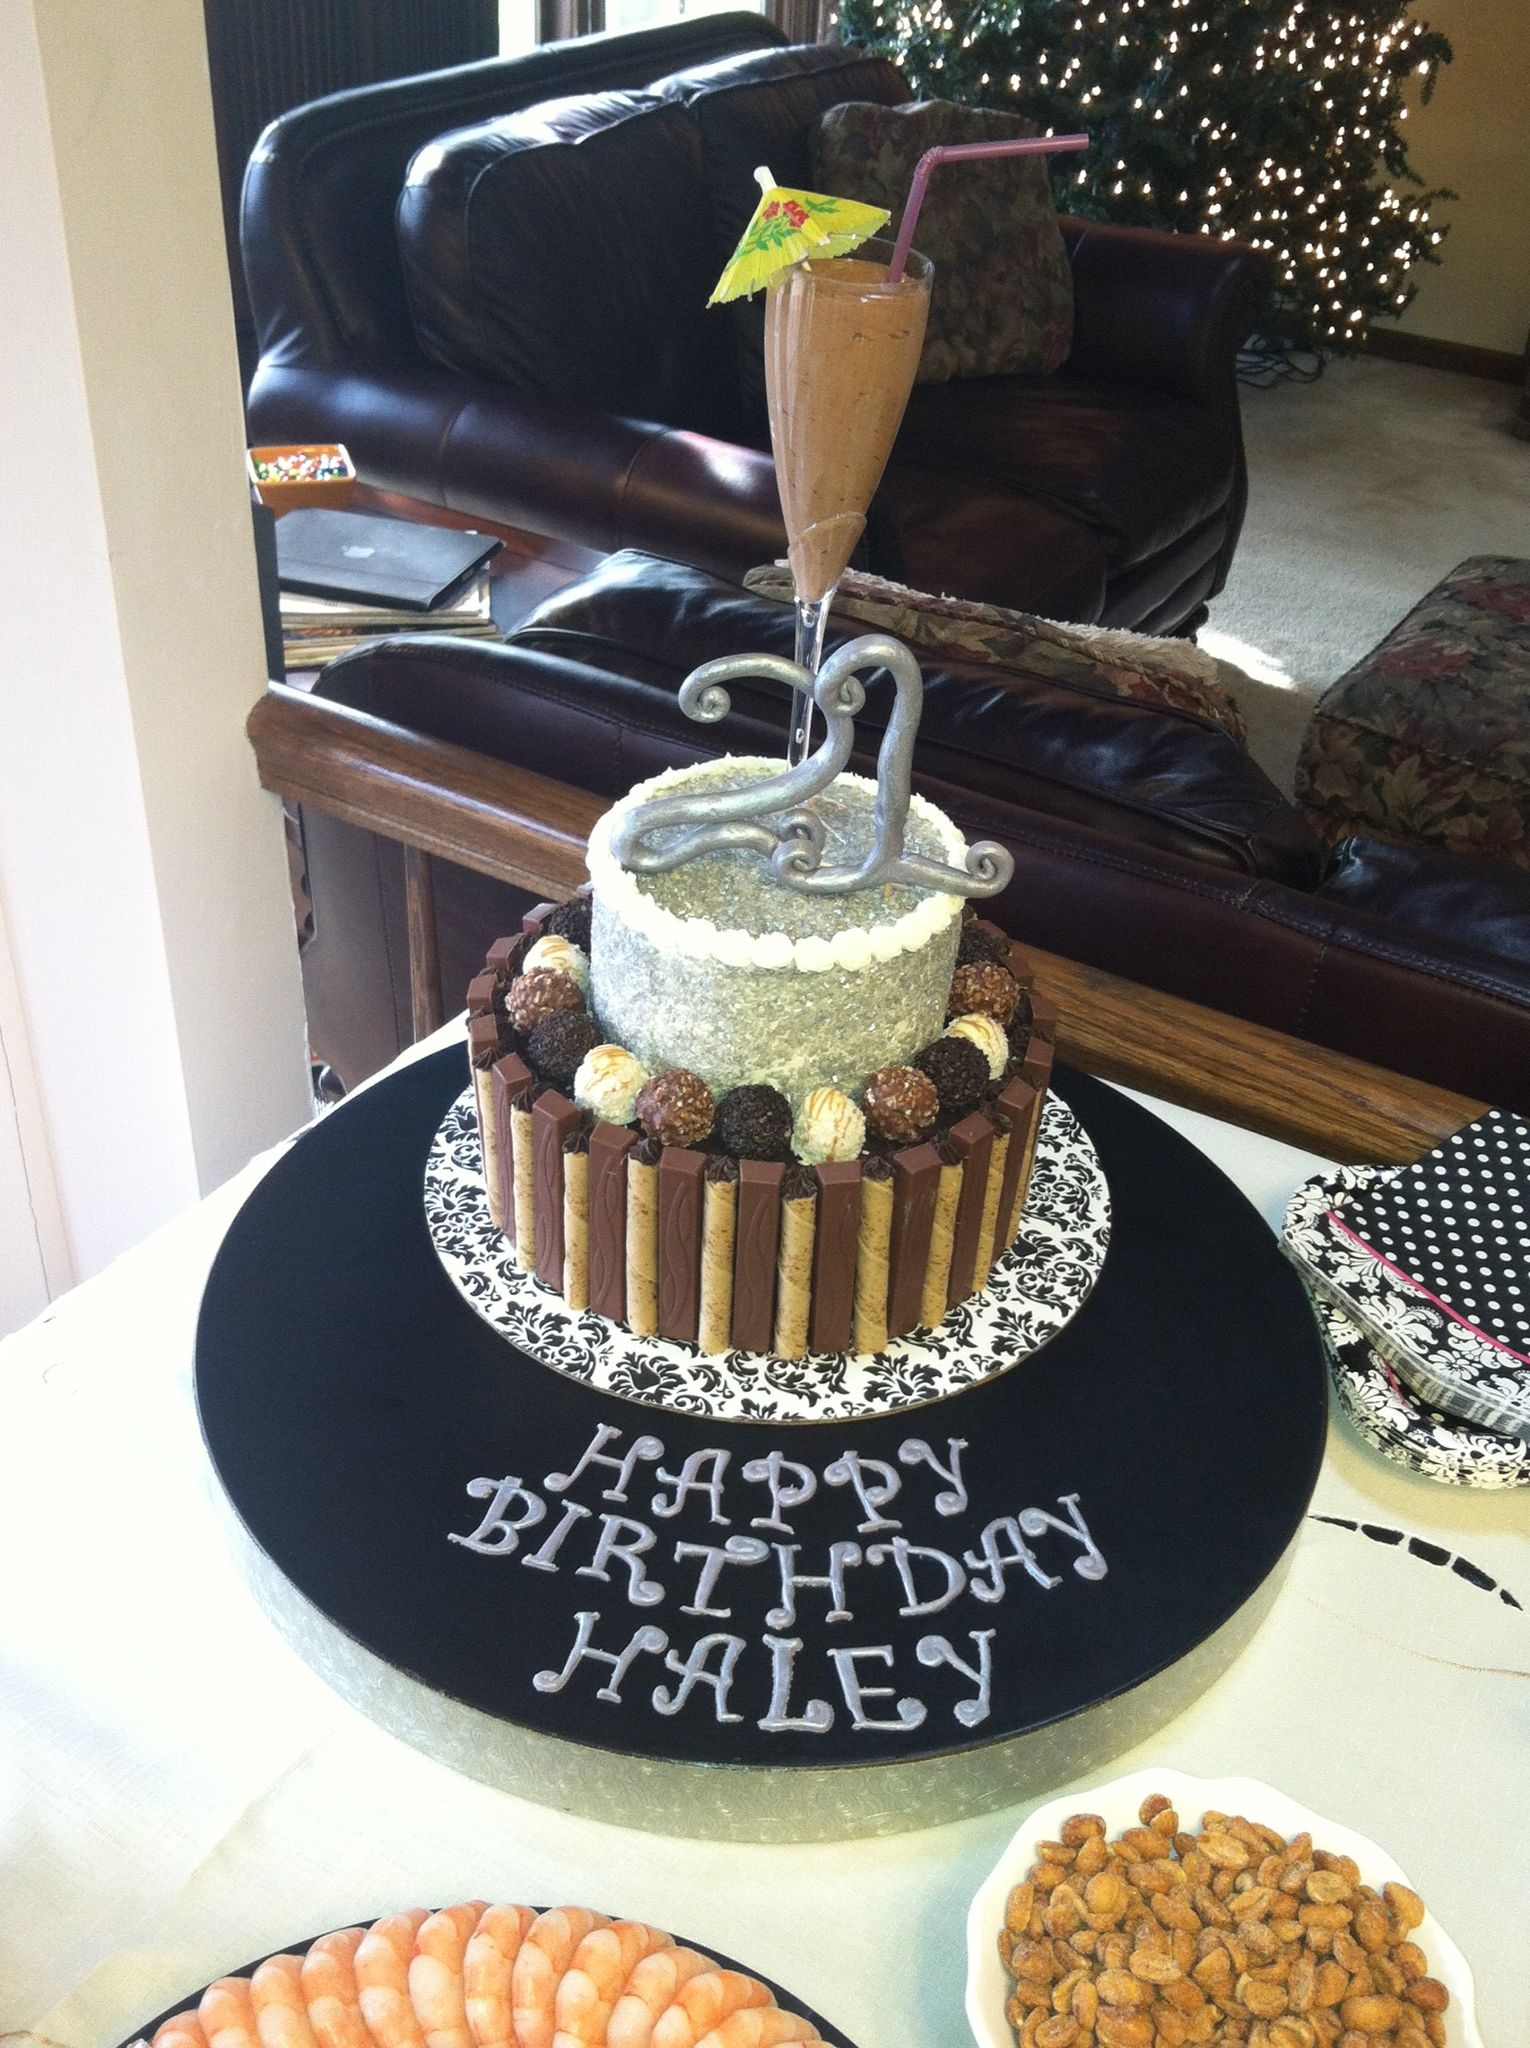 Celebrating my soon to be 21st birthday!y aunt made this incredible cake!!!